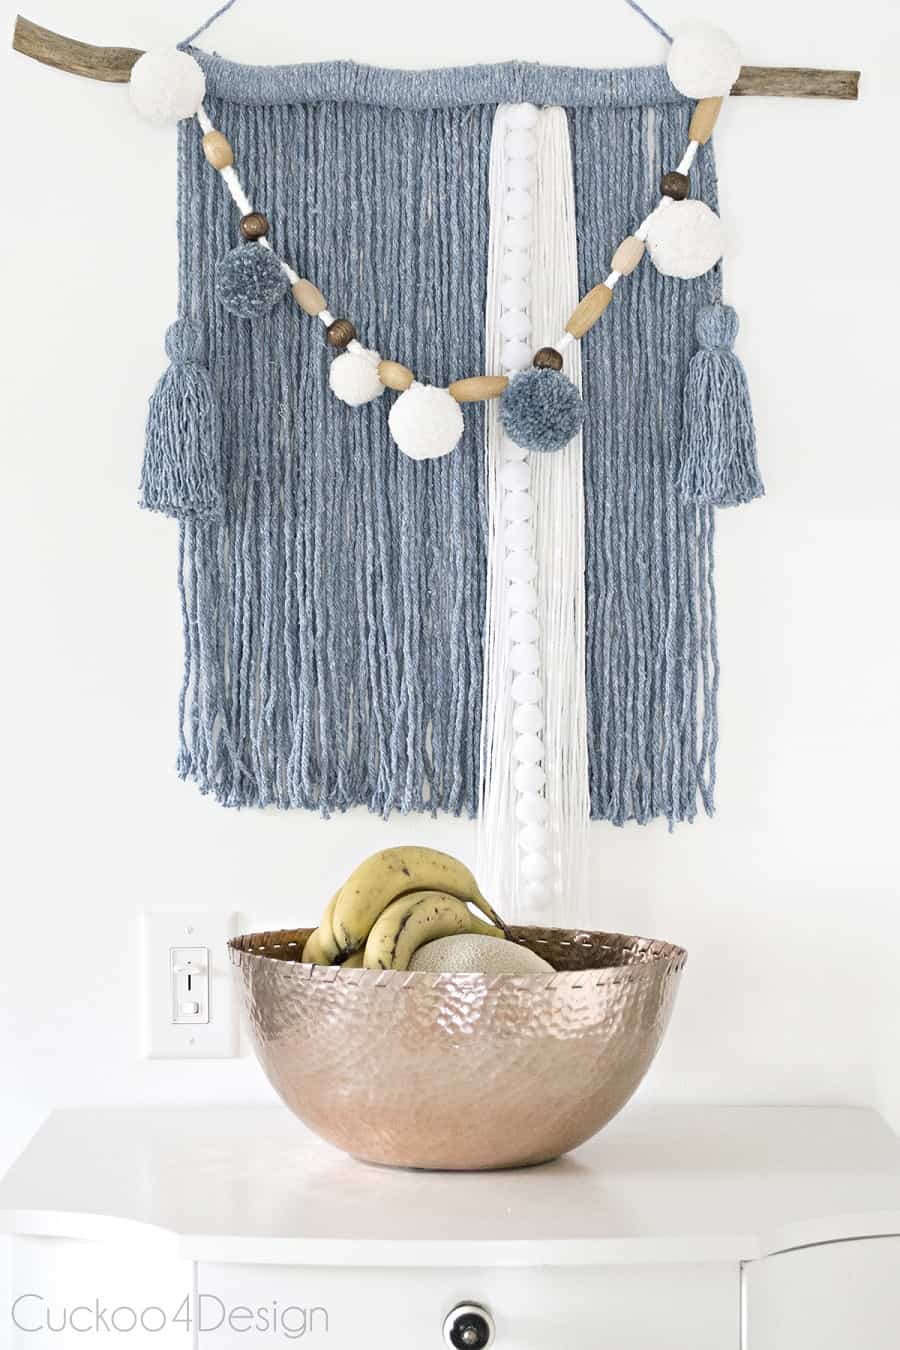 22 Yarn Art Hangings You Can Make To Cozy Up Your Walls